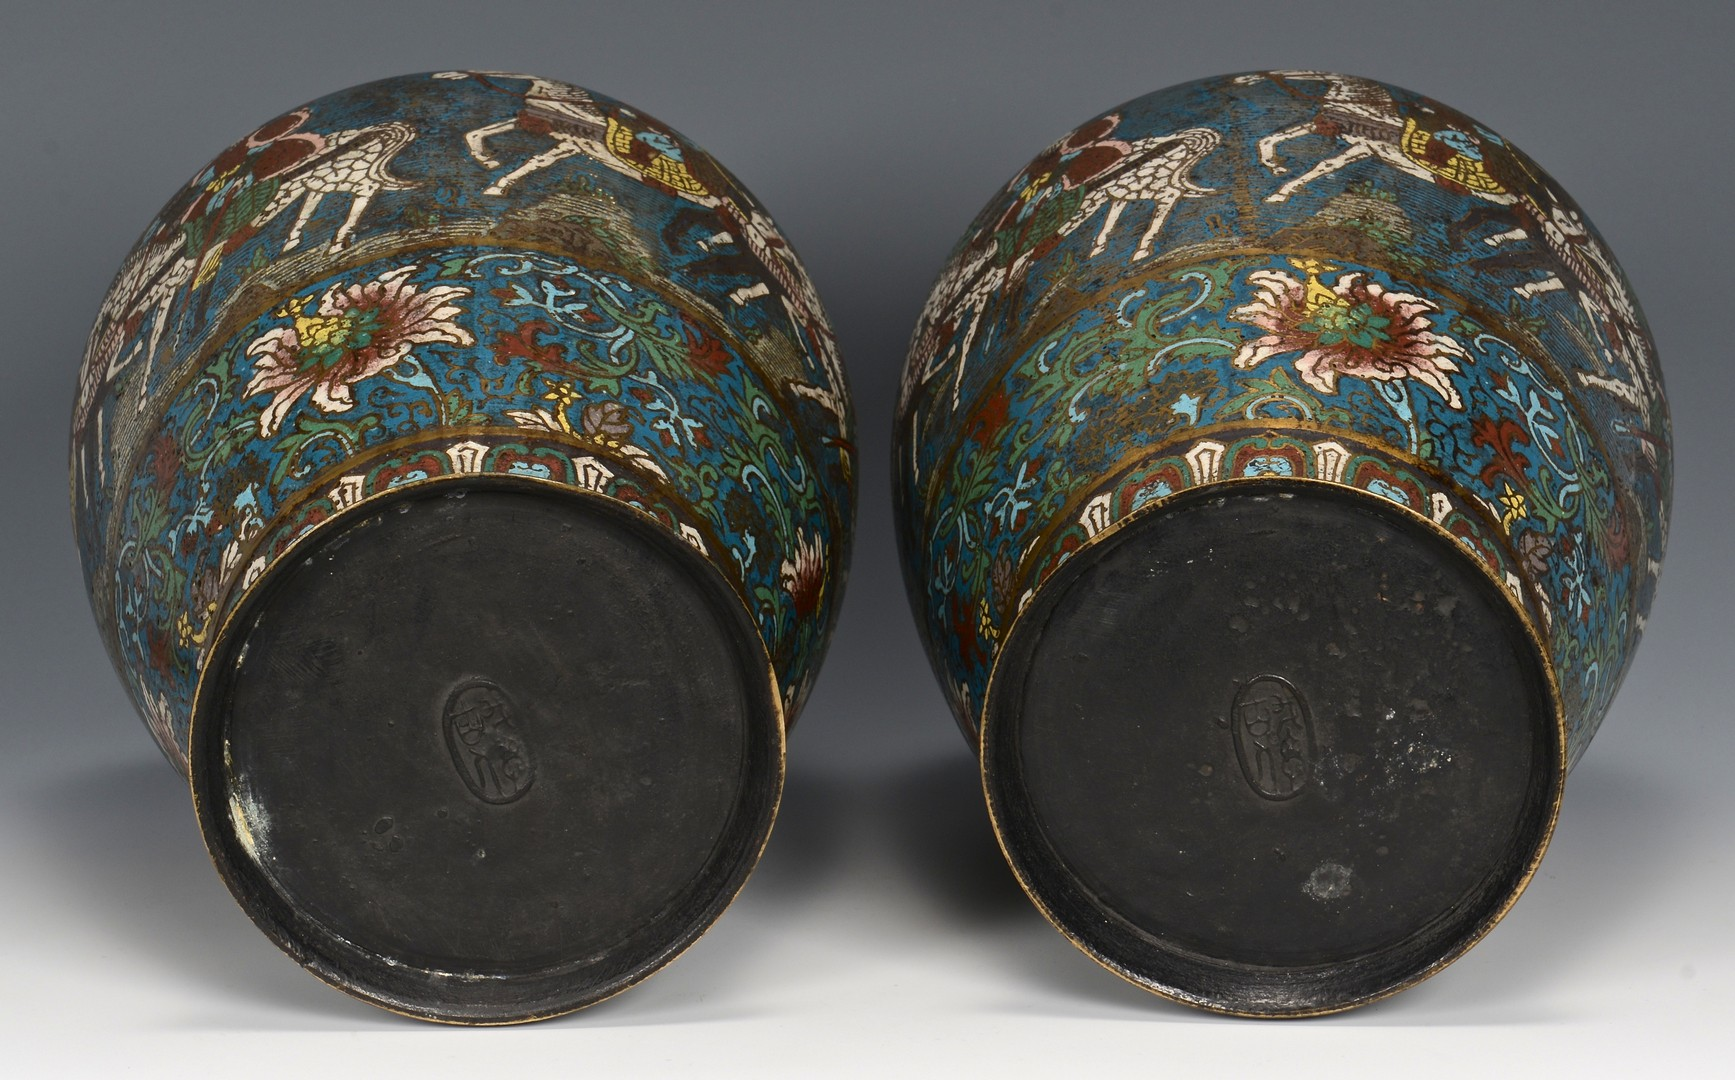 Lot 3832391: Pair of Champleve Vases